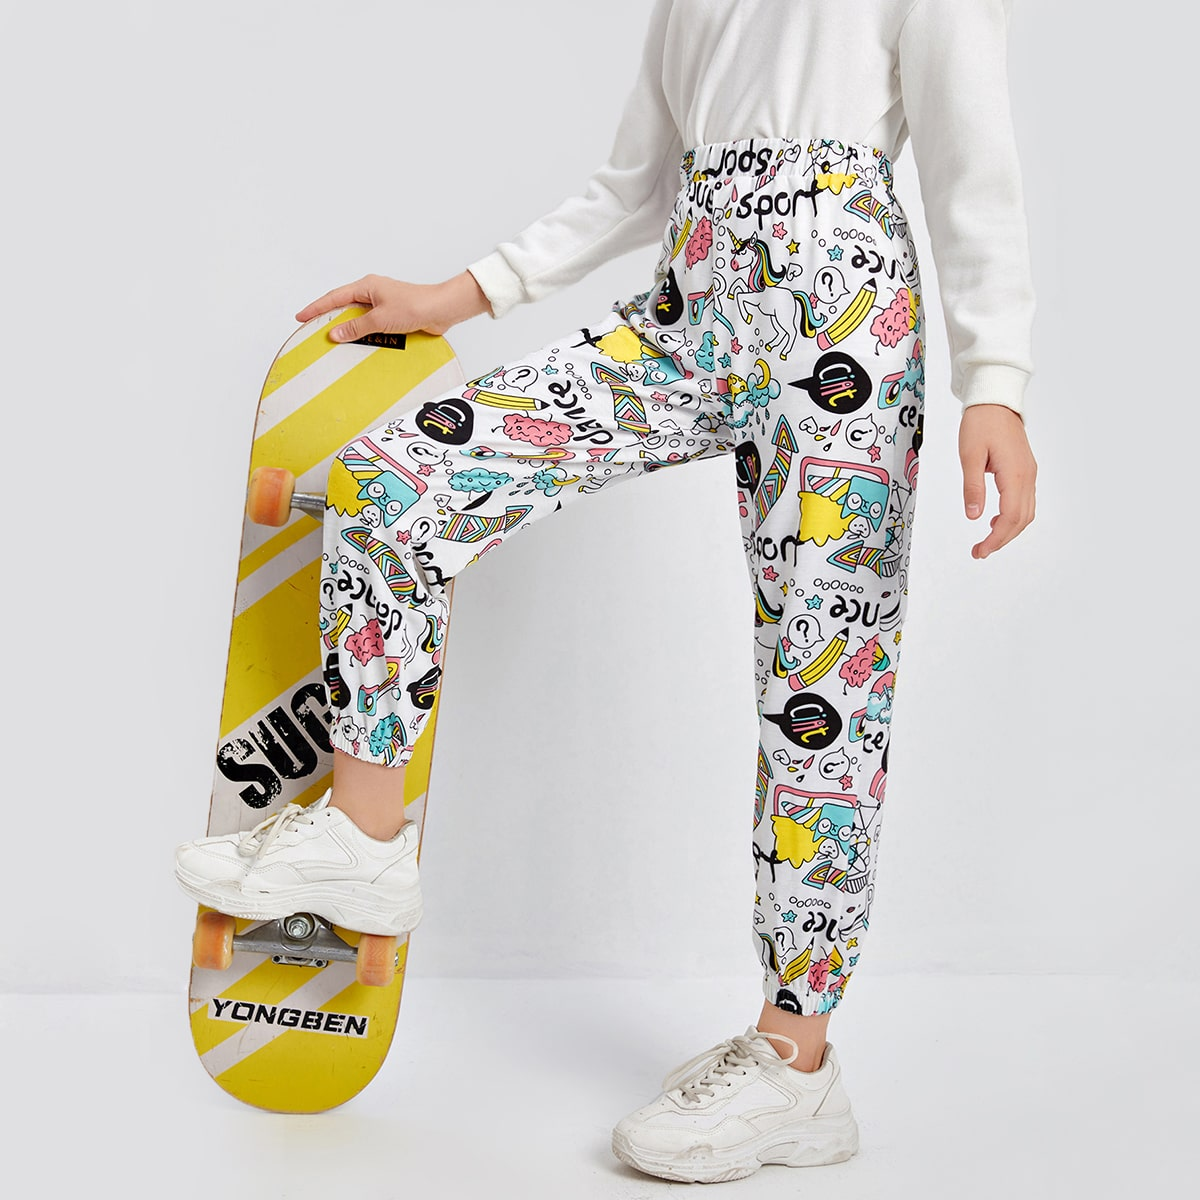 Girls Unicorn and Letter Graphic Sweatpants, SHEIN  - buy with discount